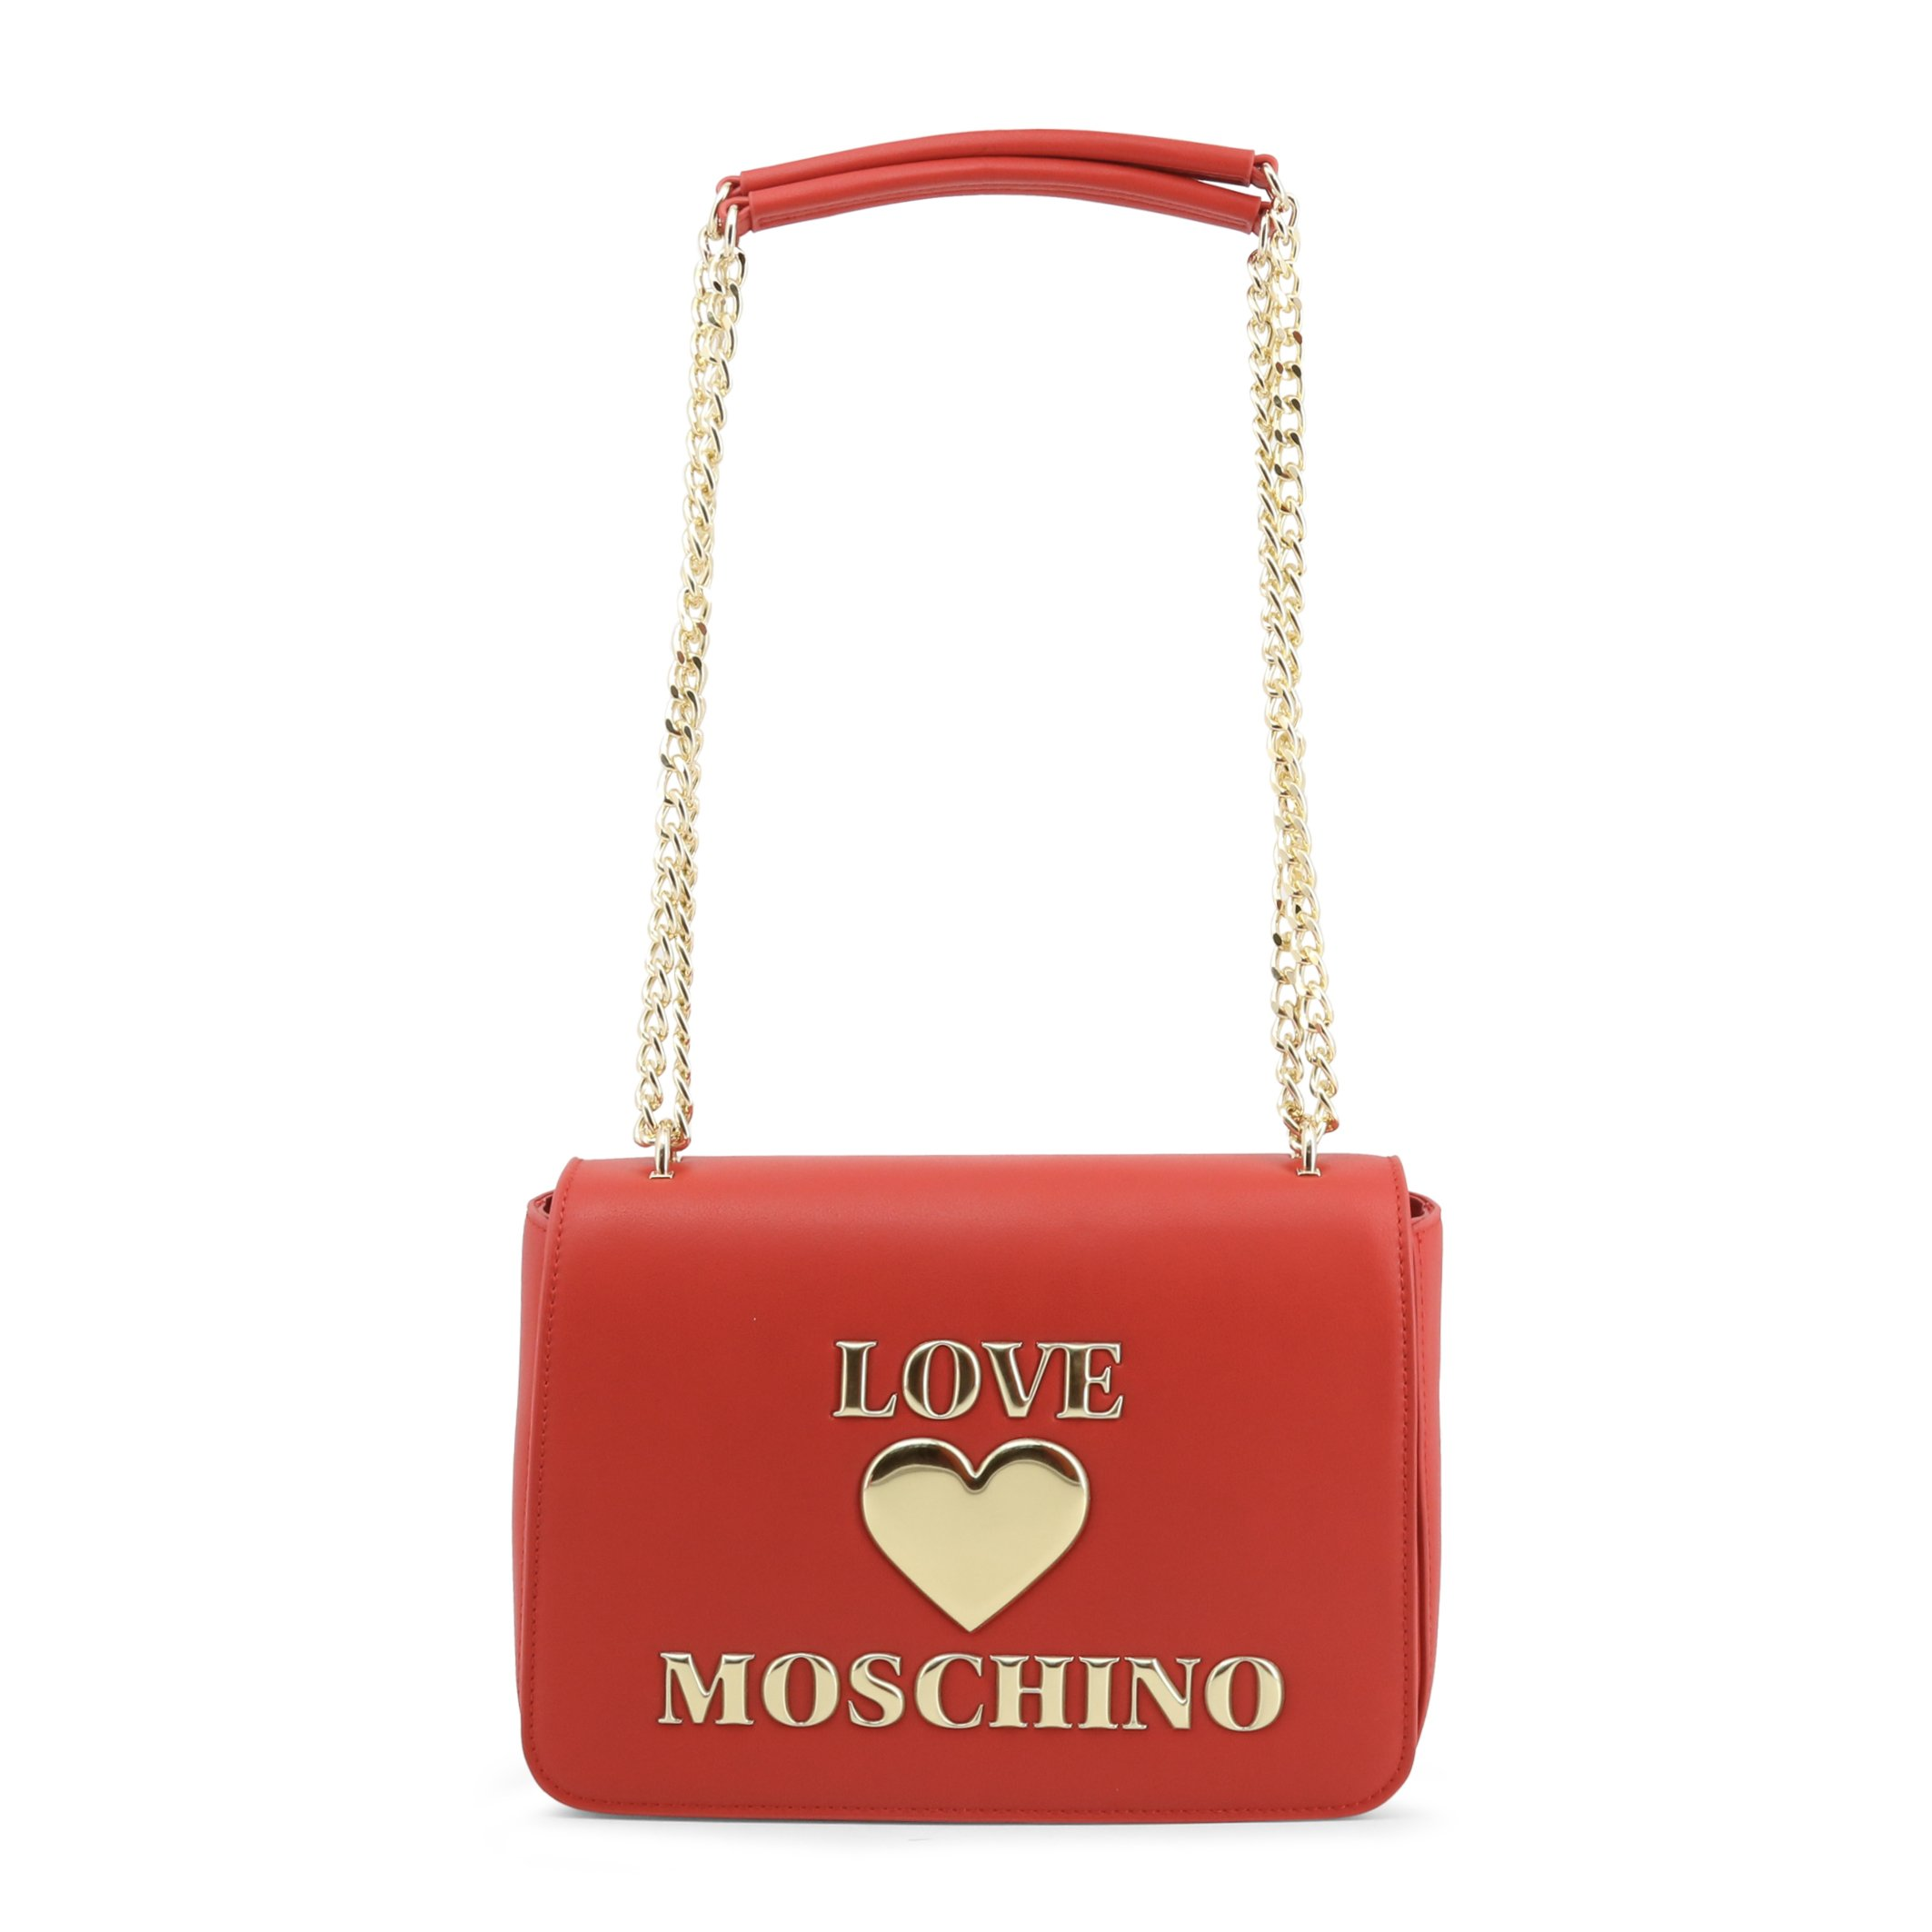 Love Moschino Women's Shoulder Bag Various Colours JC4035PP1BLE - red NOSIZE